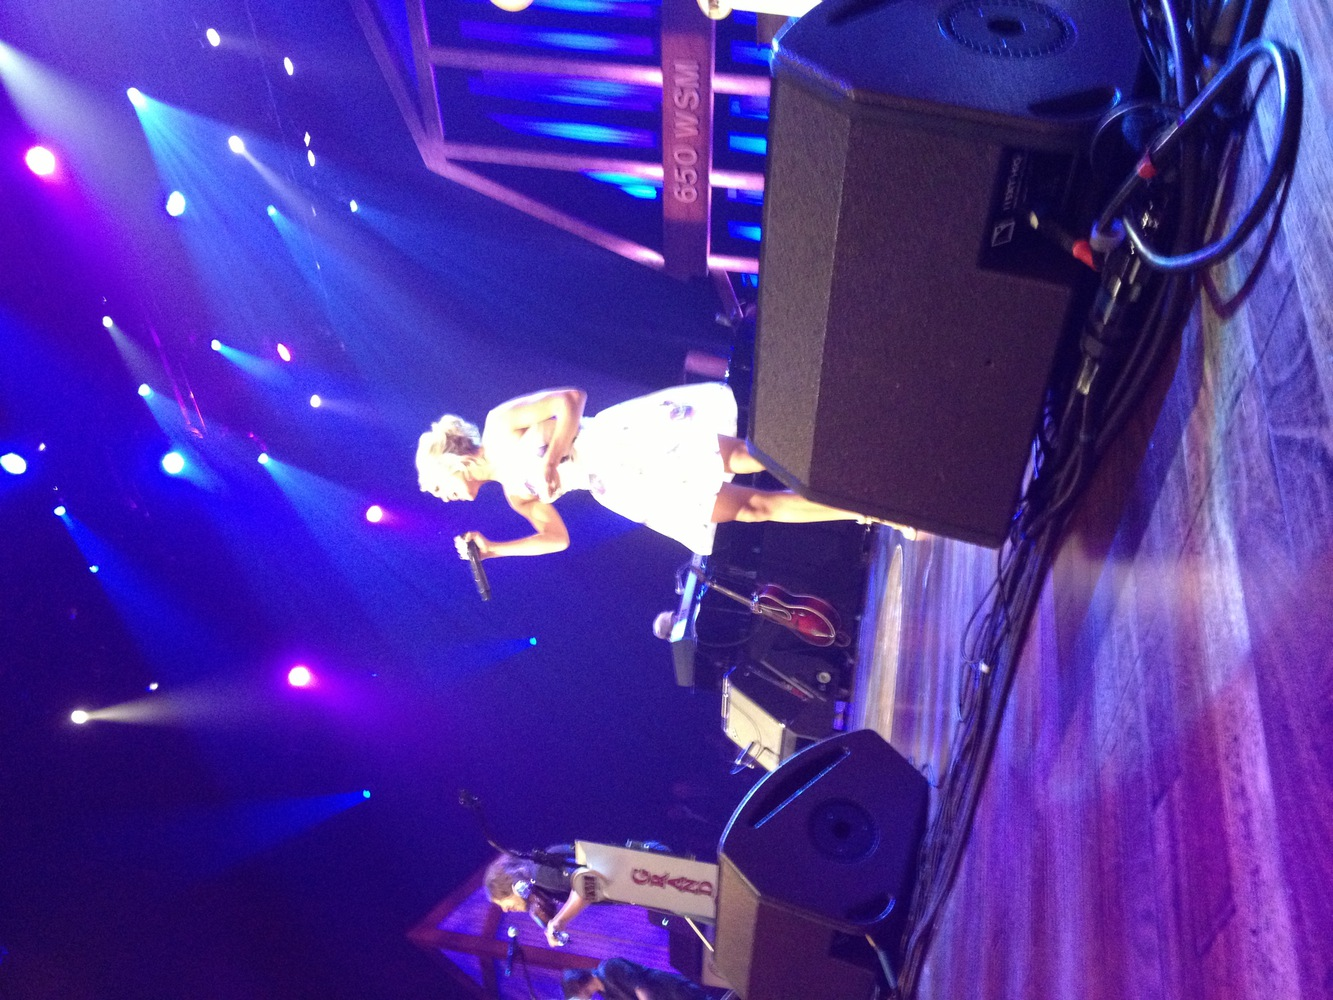 Carrie at the Opry in June of 2013! She even waved to me like 3 times which is awesome!